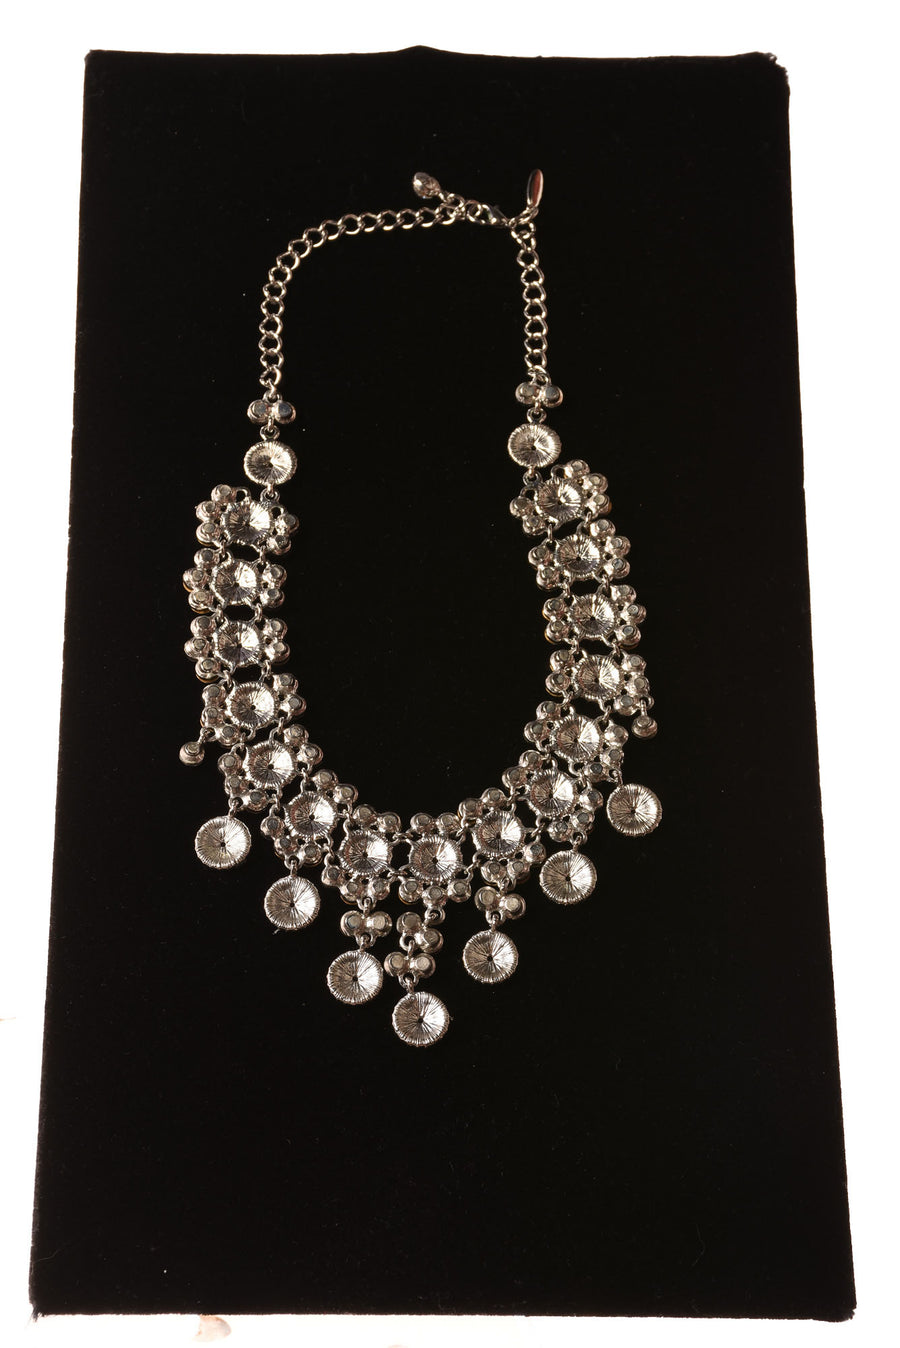 USED Natasha Women's Necklace N/A Silver